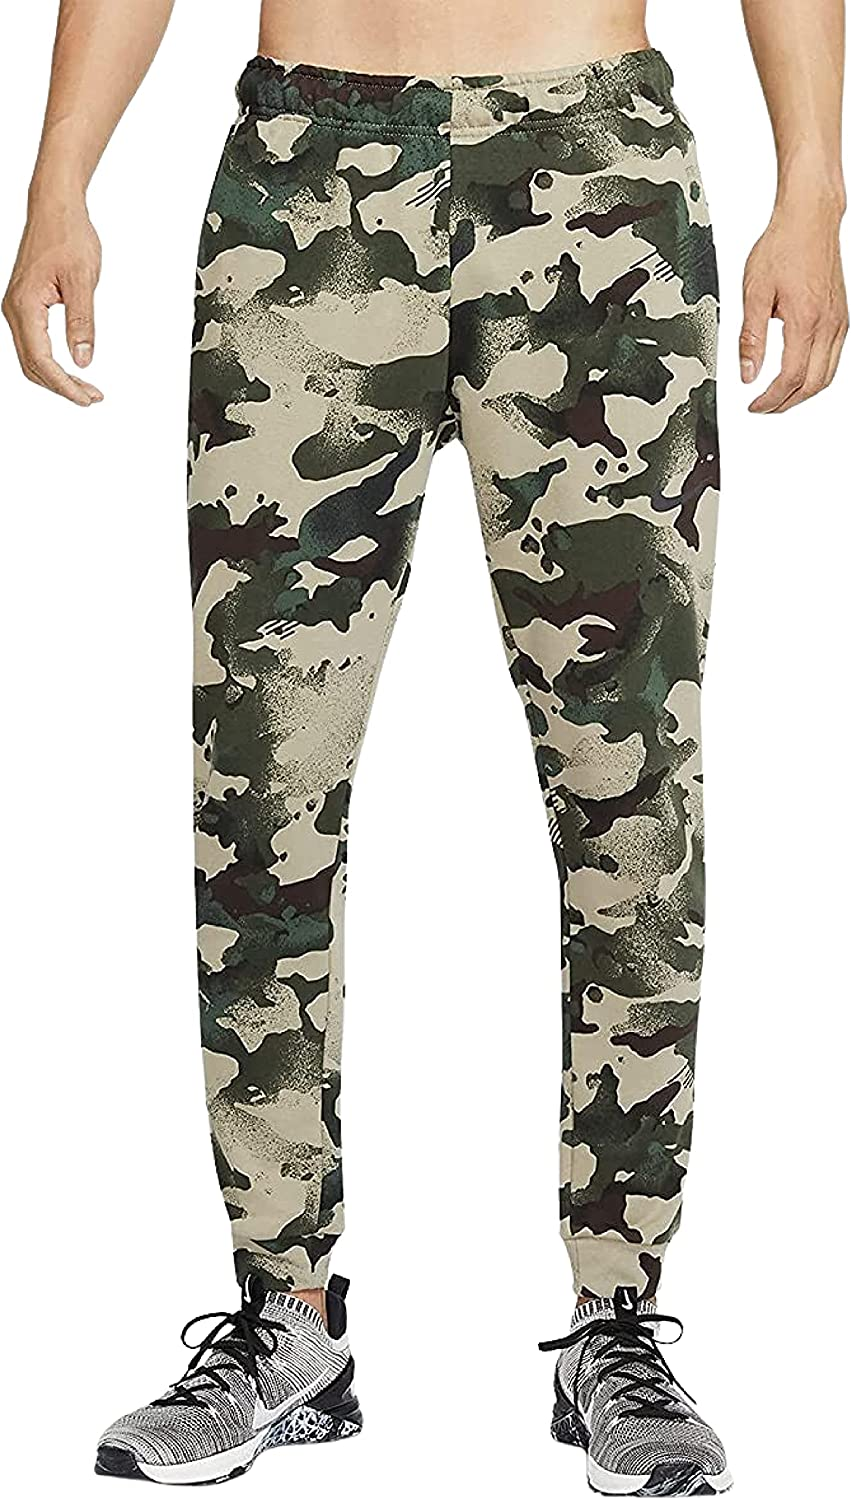 Nike Men's Dri-fit French 2021 new Terry 3X-Larg Size Training Camo Complete Free Shipping Pants